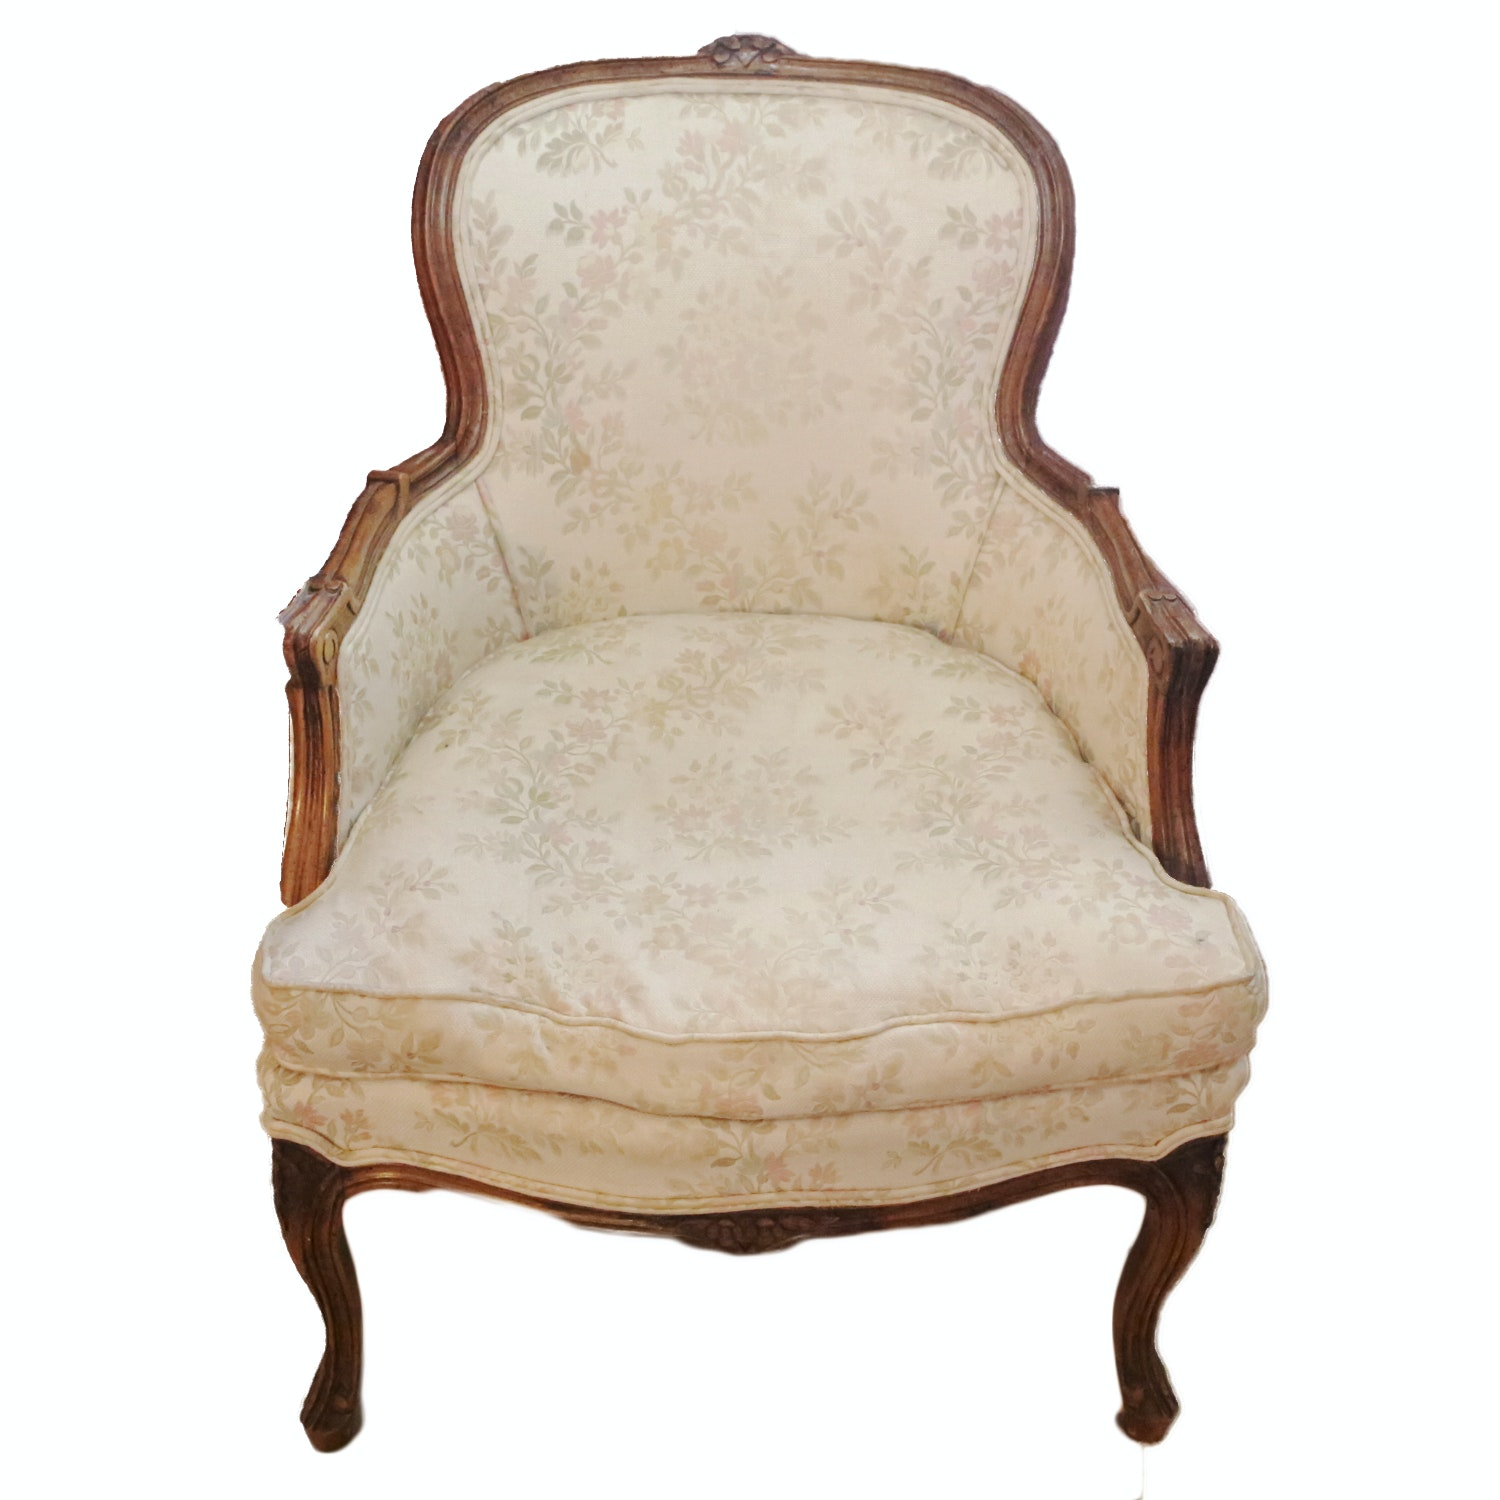 Vintage French Provincial Style Armchair by Century Chair Company